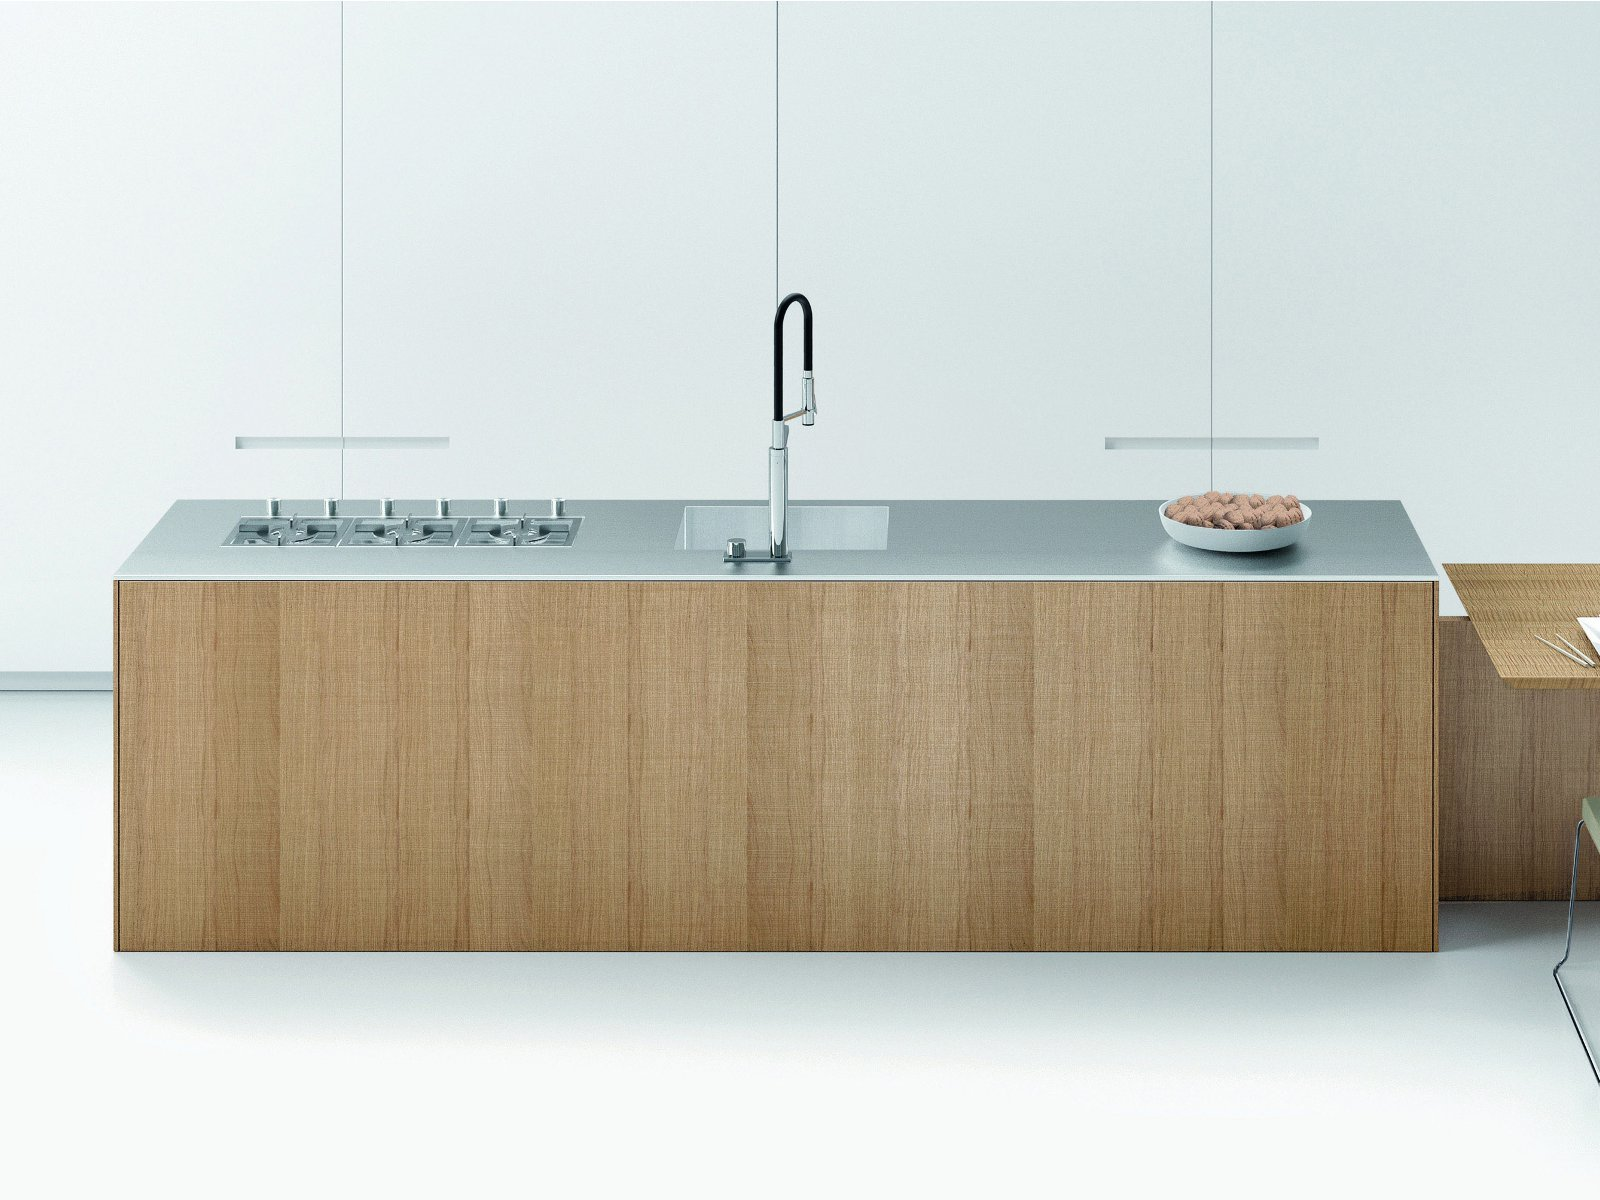 euromobil filo antis assim wooden fitted kitchen antis fusion fitted kitchens euromobil